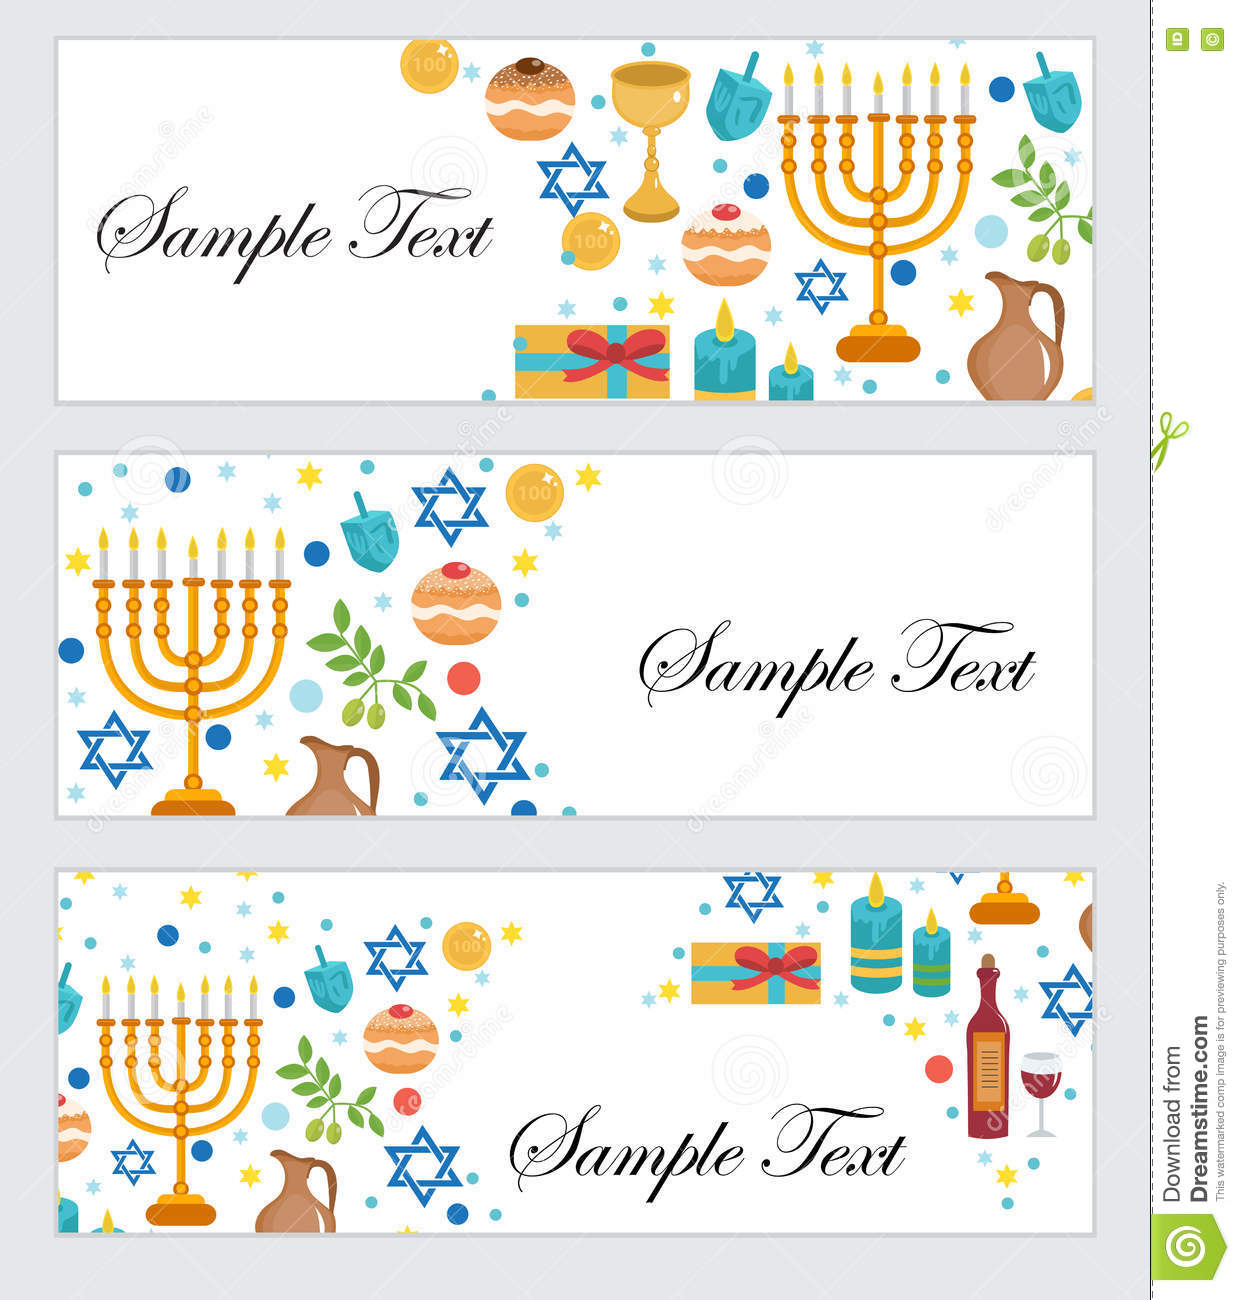 Happy Hanukkah, banners set. Hanukkah Jewish Festival of Lights, Feast of Dedication. Hanukkah set banners with space for text.